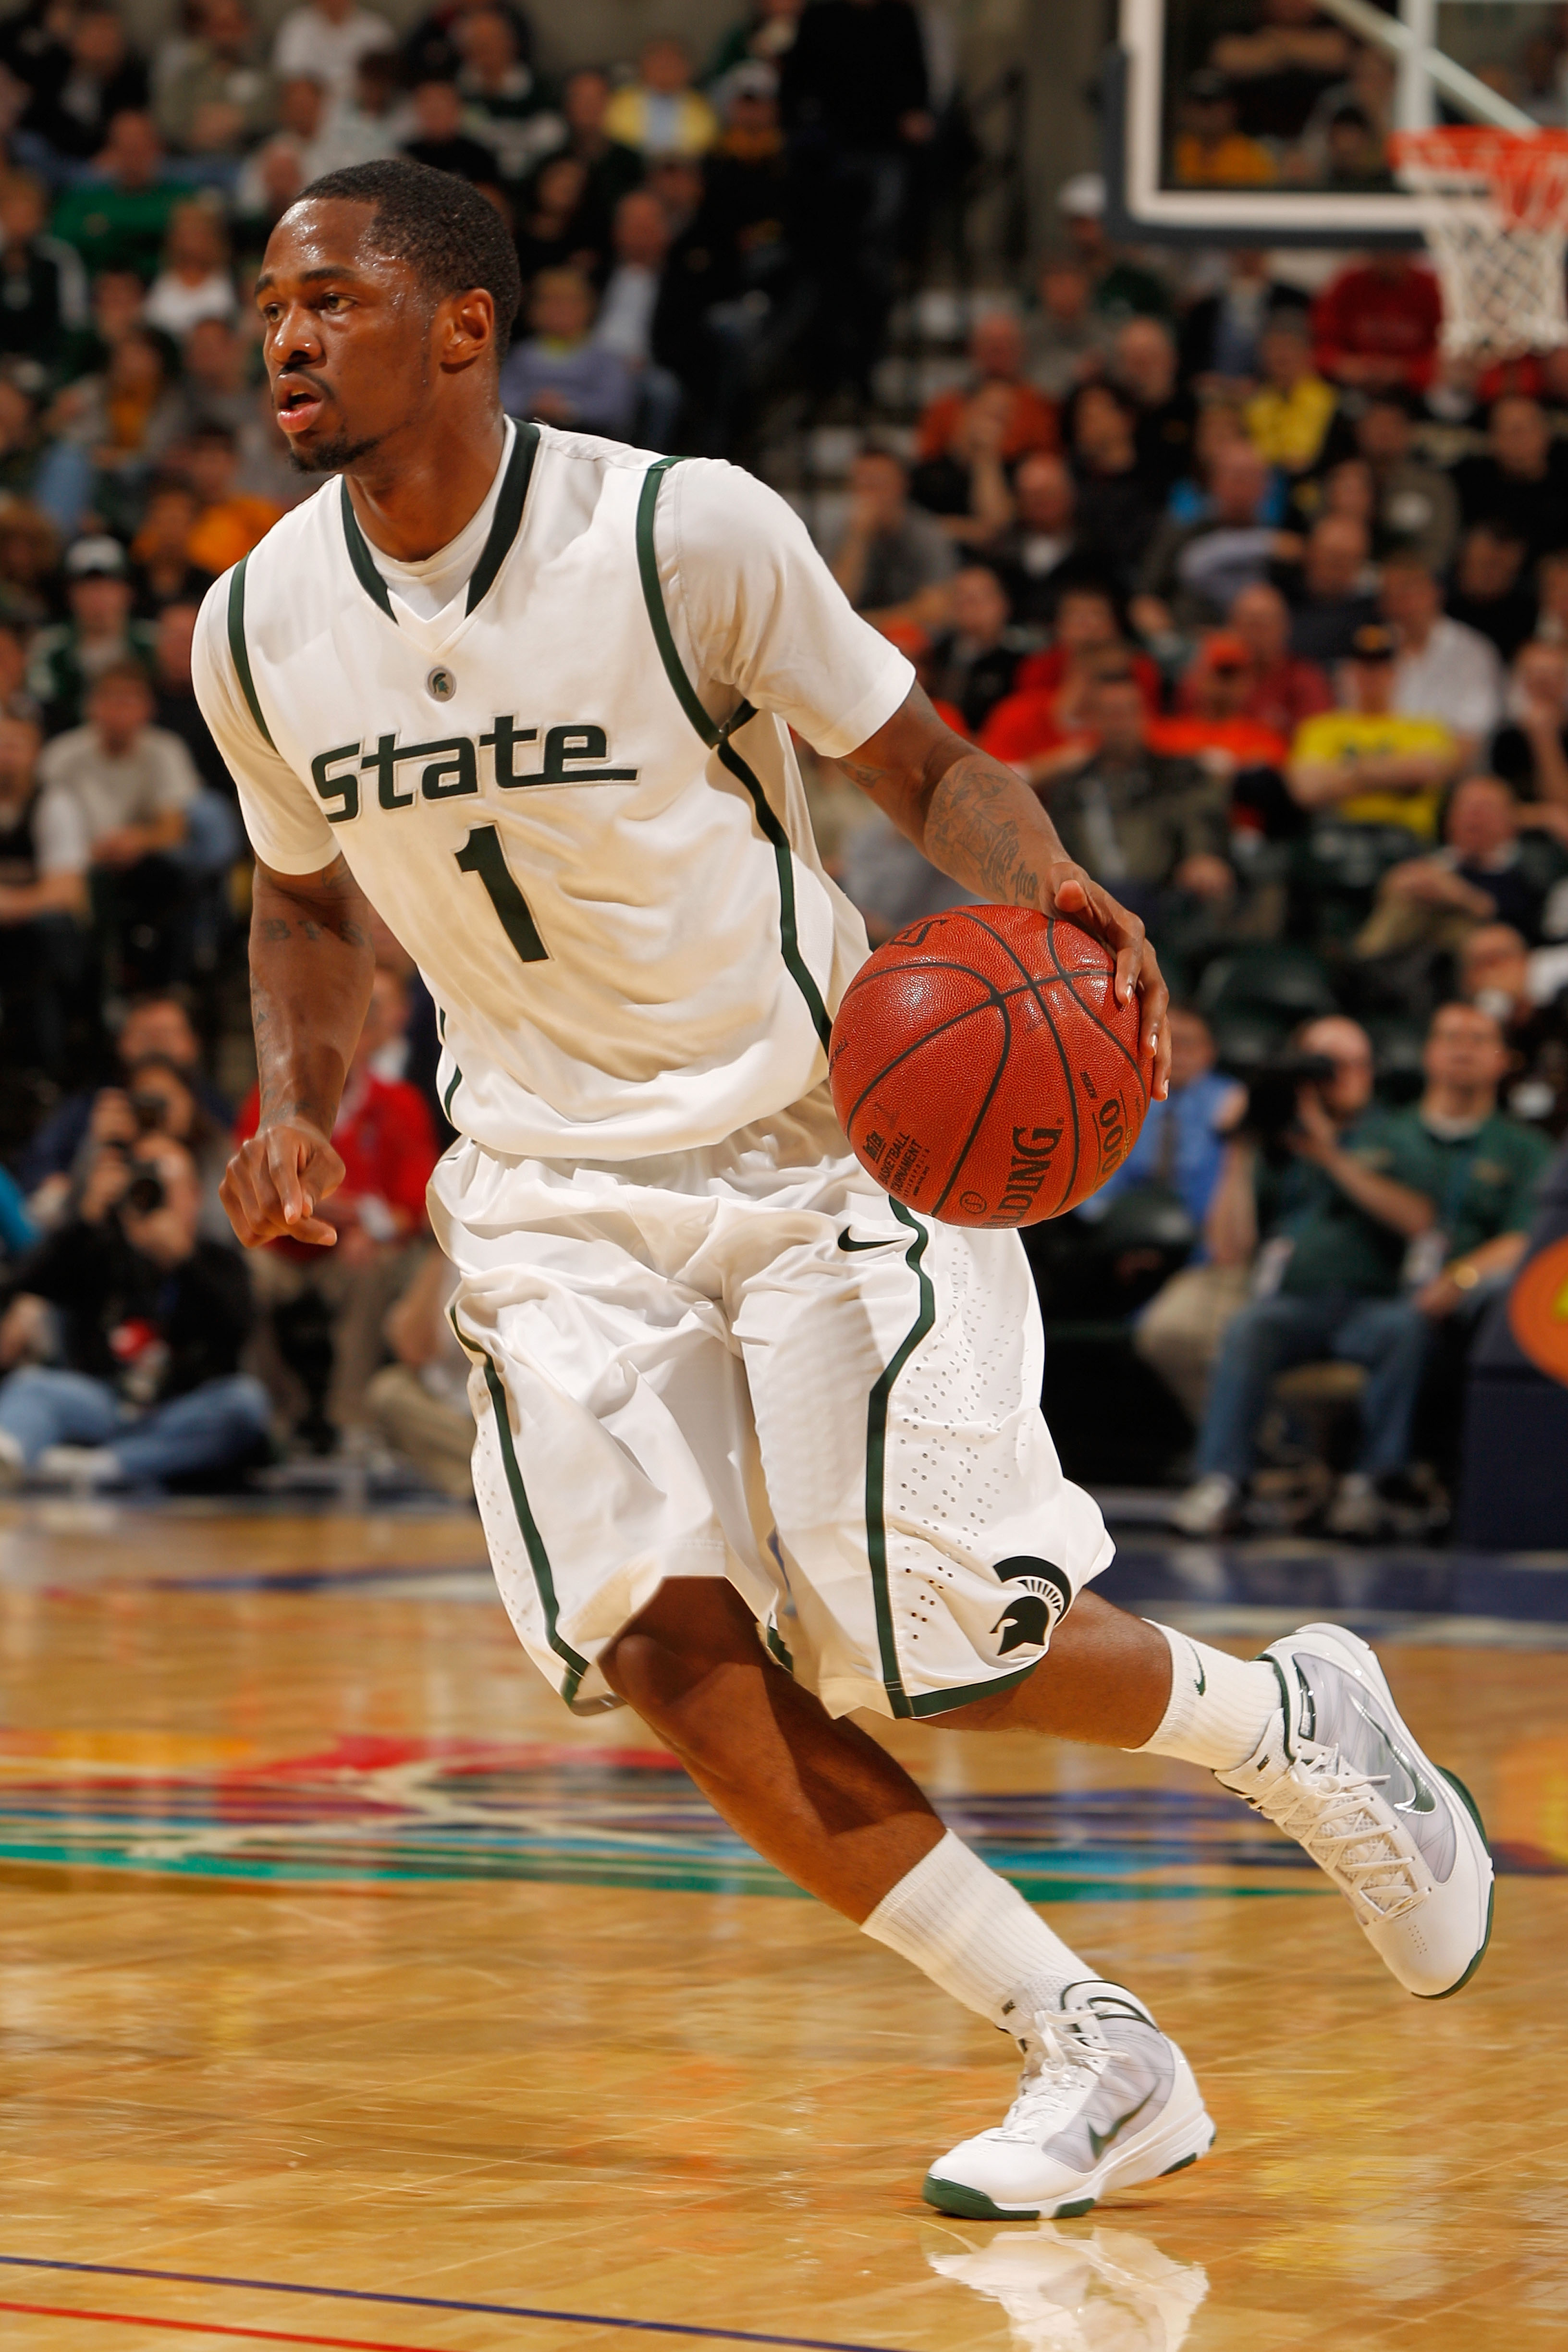 INDIANAPOLIS - MARCH 12:  Kalin Lucas #1 of the Michigan State Spartans moves the ball against the Minnesota Golden Gophers during the quarterfinals of the Big Ten Men's Basketball Tournament at Conseco Fieldhouse on March 12, 2010 in Indianapolis, Indian